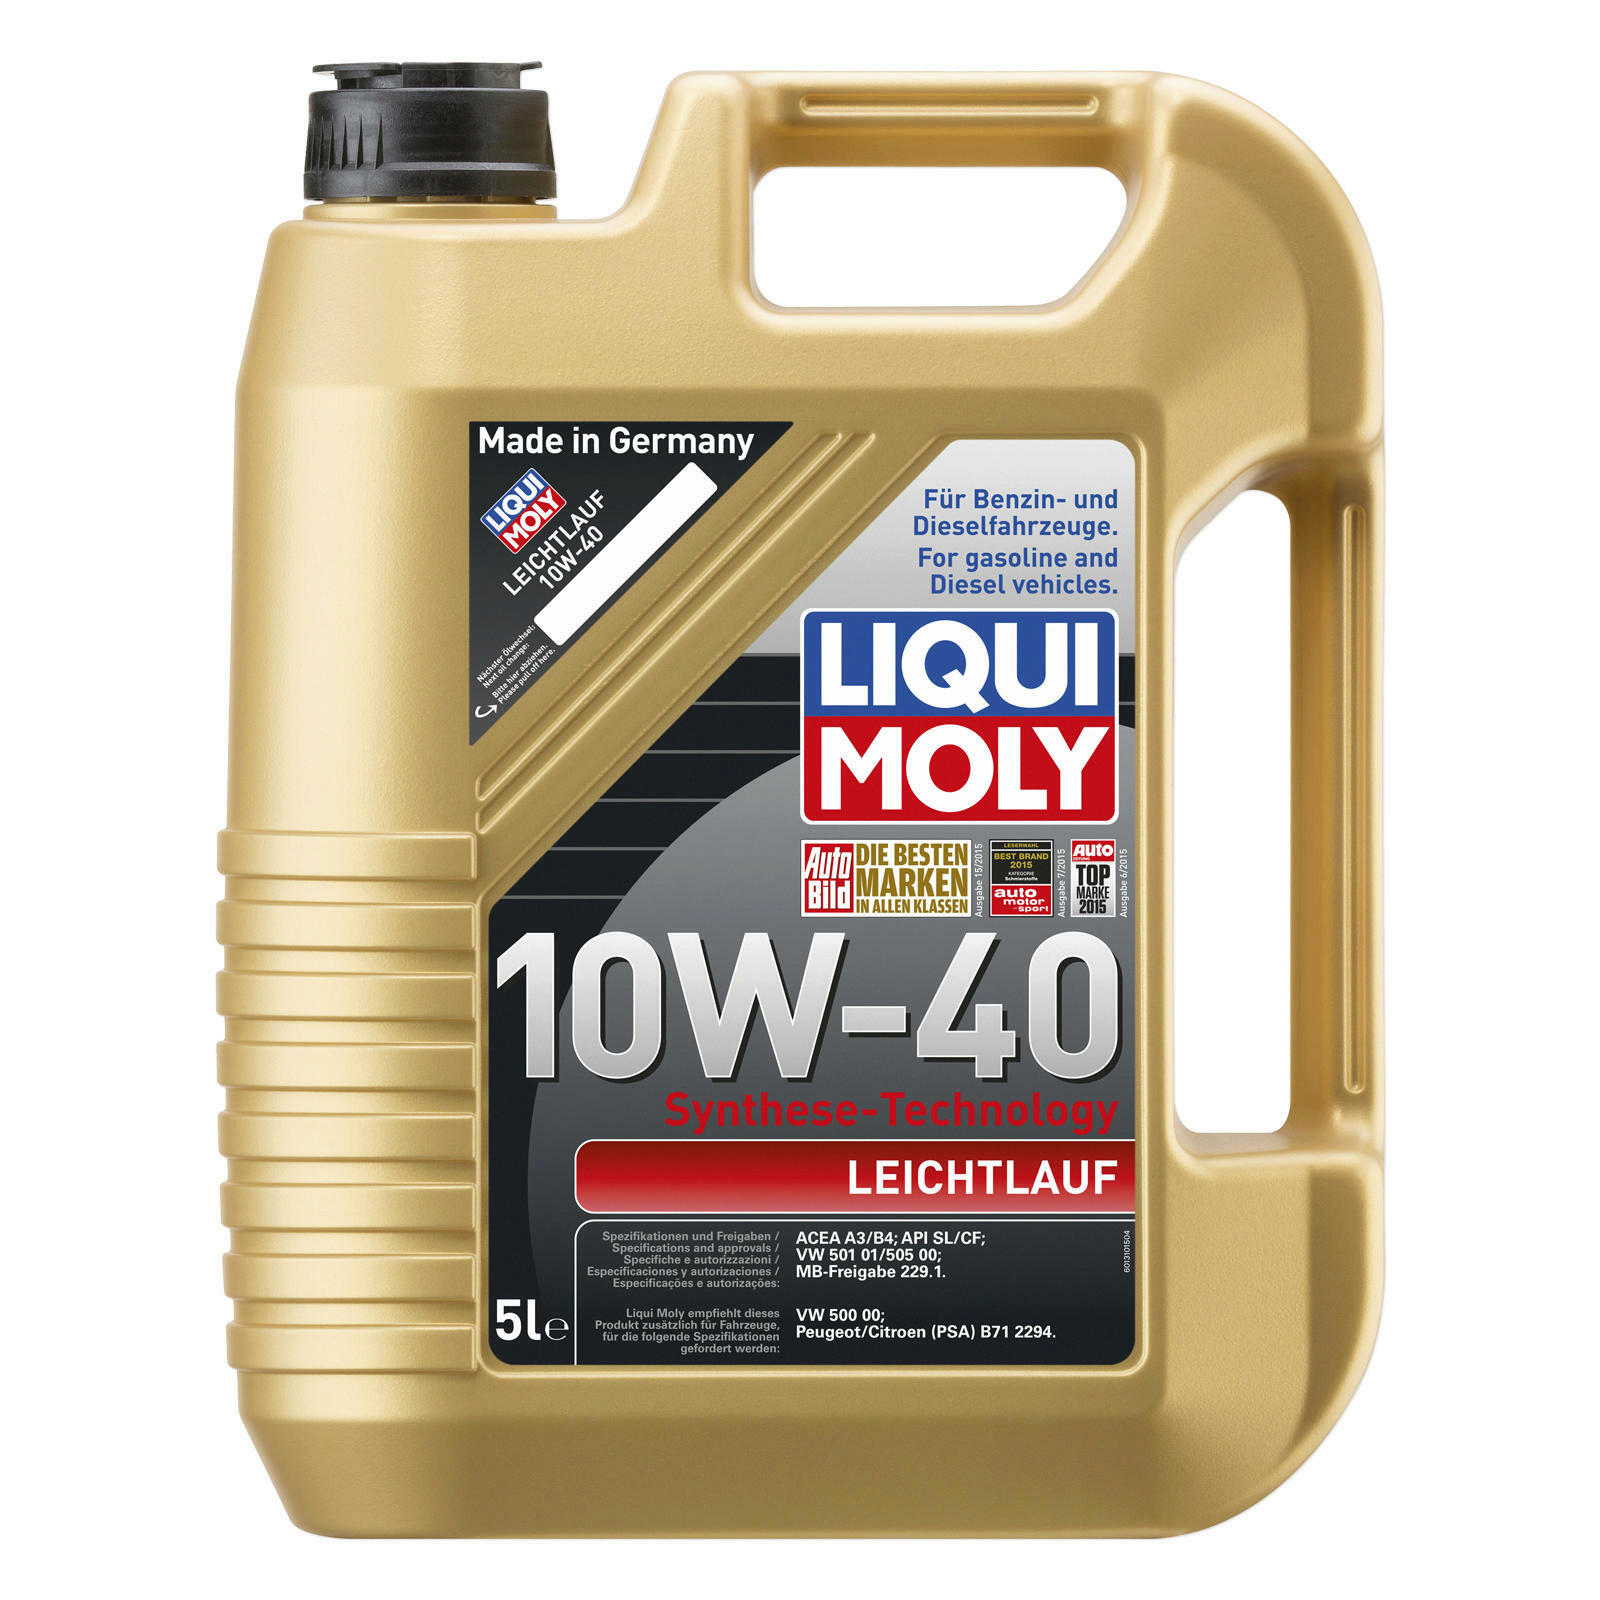 lwechsel set 5 liter 10w40 l motor l liqui moly. Black Bedroom Furniture Sets. Home Design Ideas